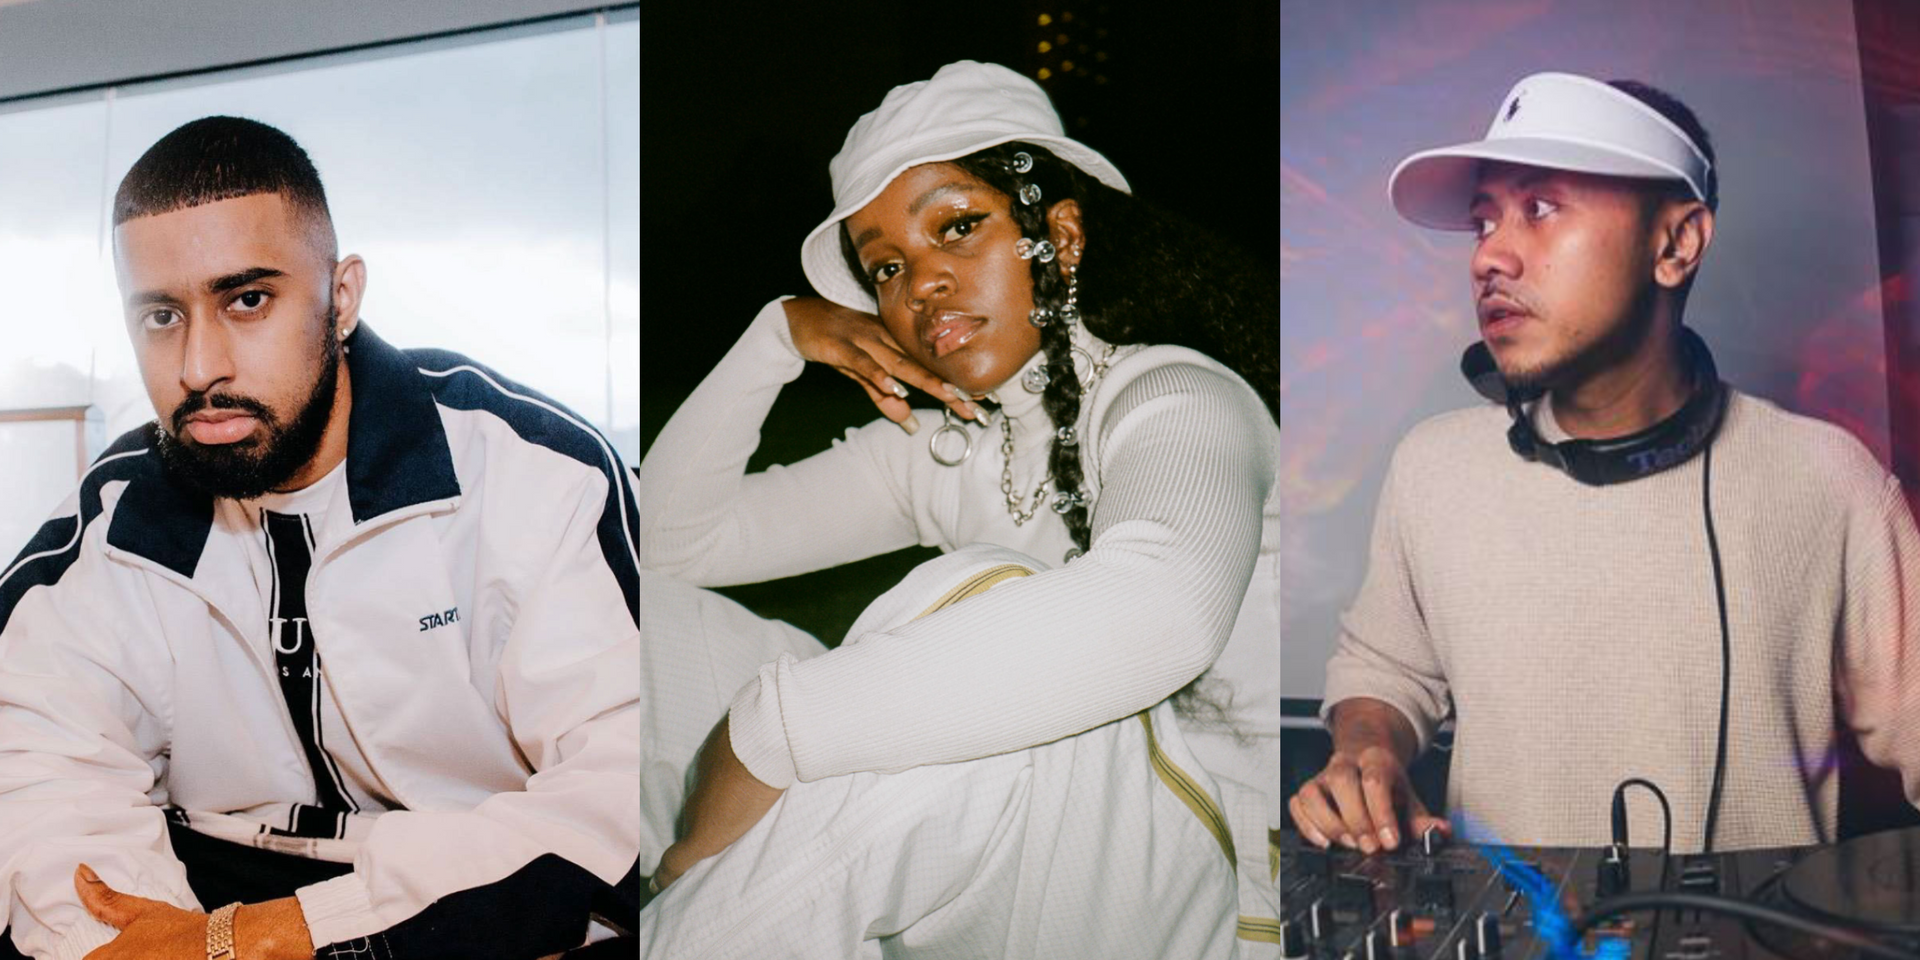 Tkay Maidza to perform in Singapore this September, PRAV and XG of .WAV(Y) to support